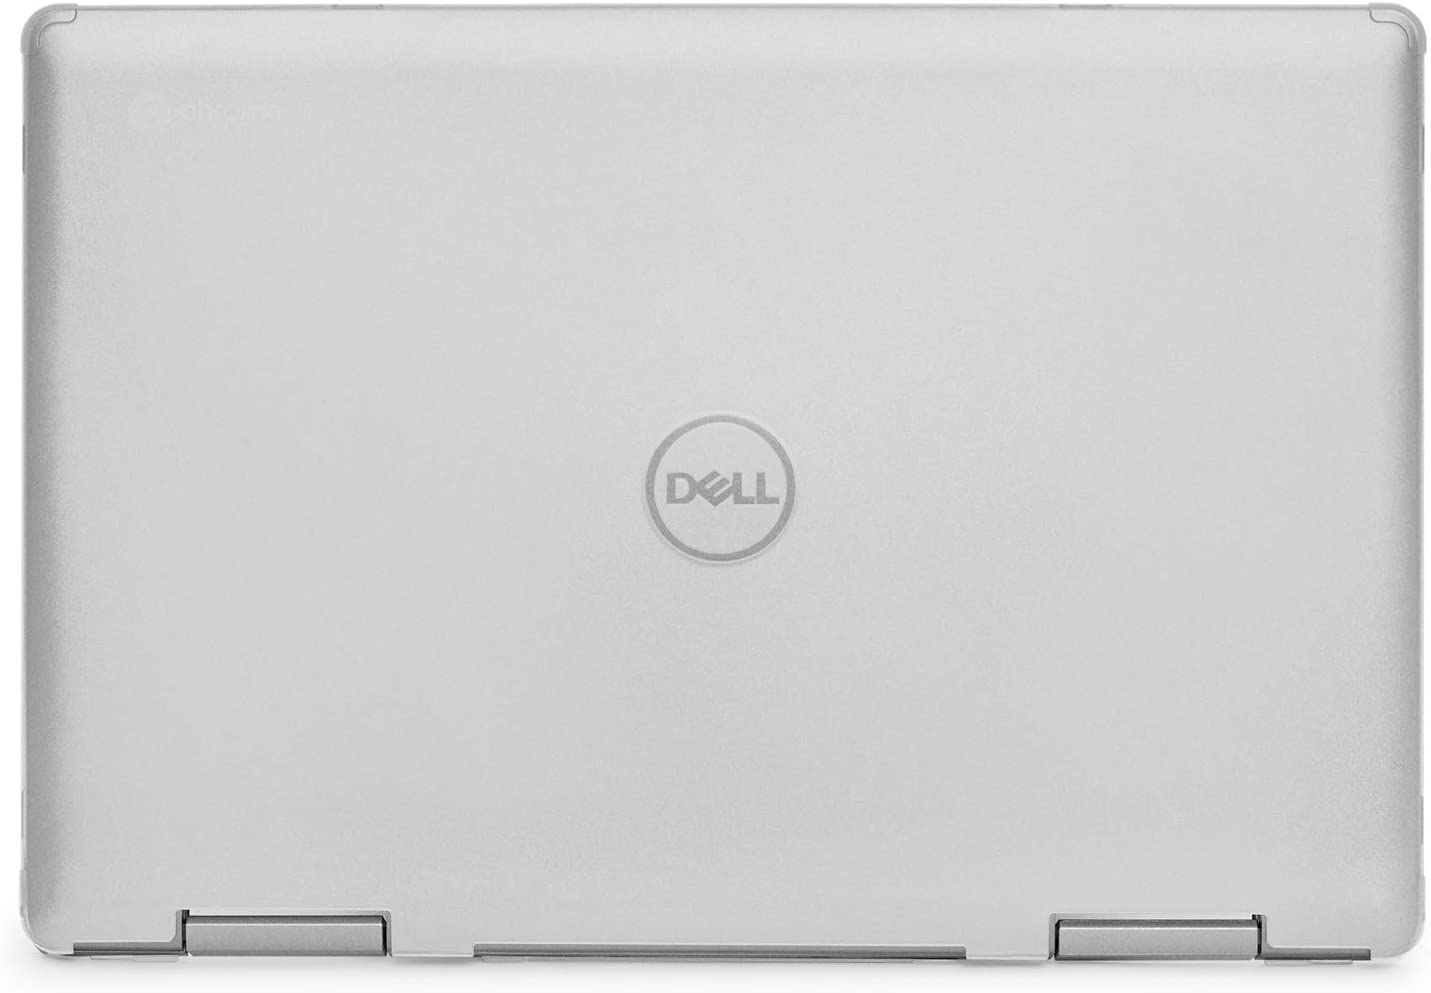 "mCover Hard Shell Case for 14"" Dell Chromebook 14 7486 2-in-1 Series Laptop (NOT Compatible with Other 11.6-inch / 13-inch Dell Chromebook Series) (Clear)"